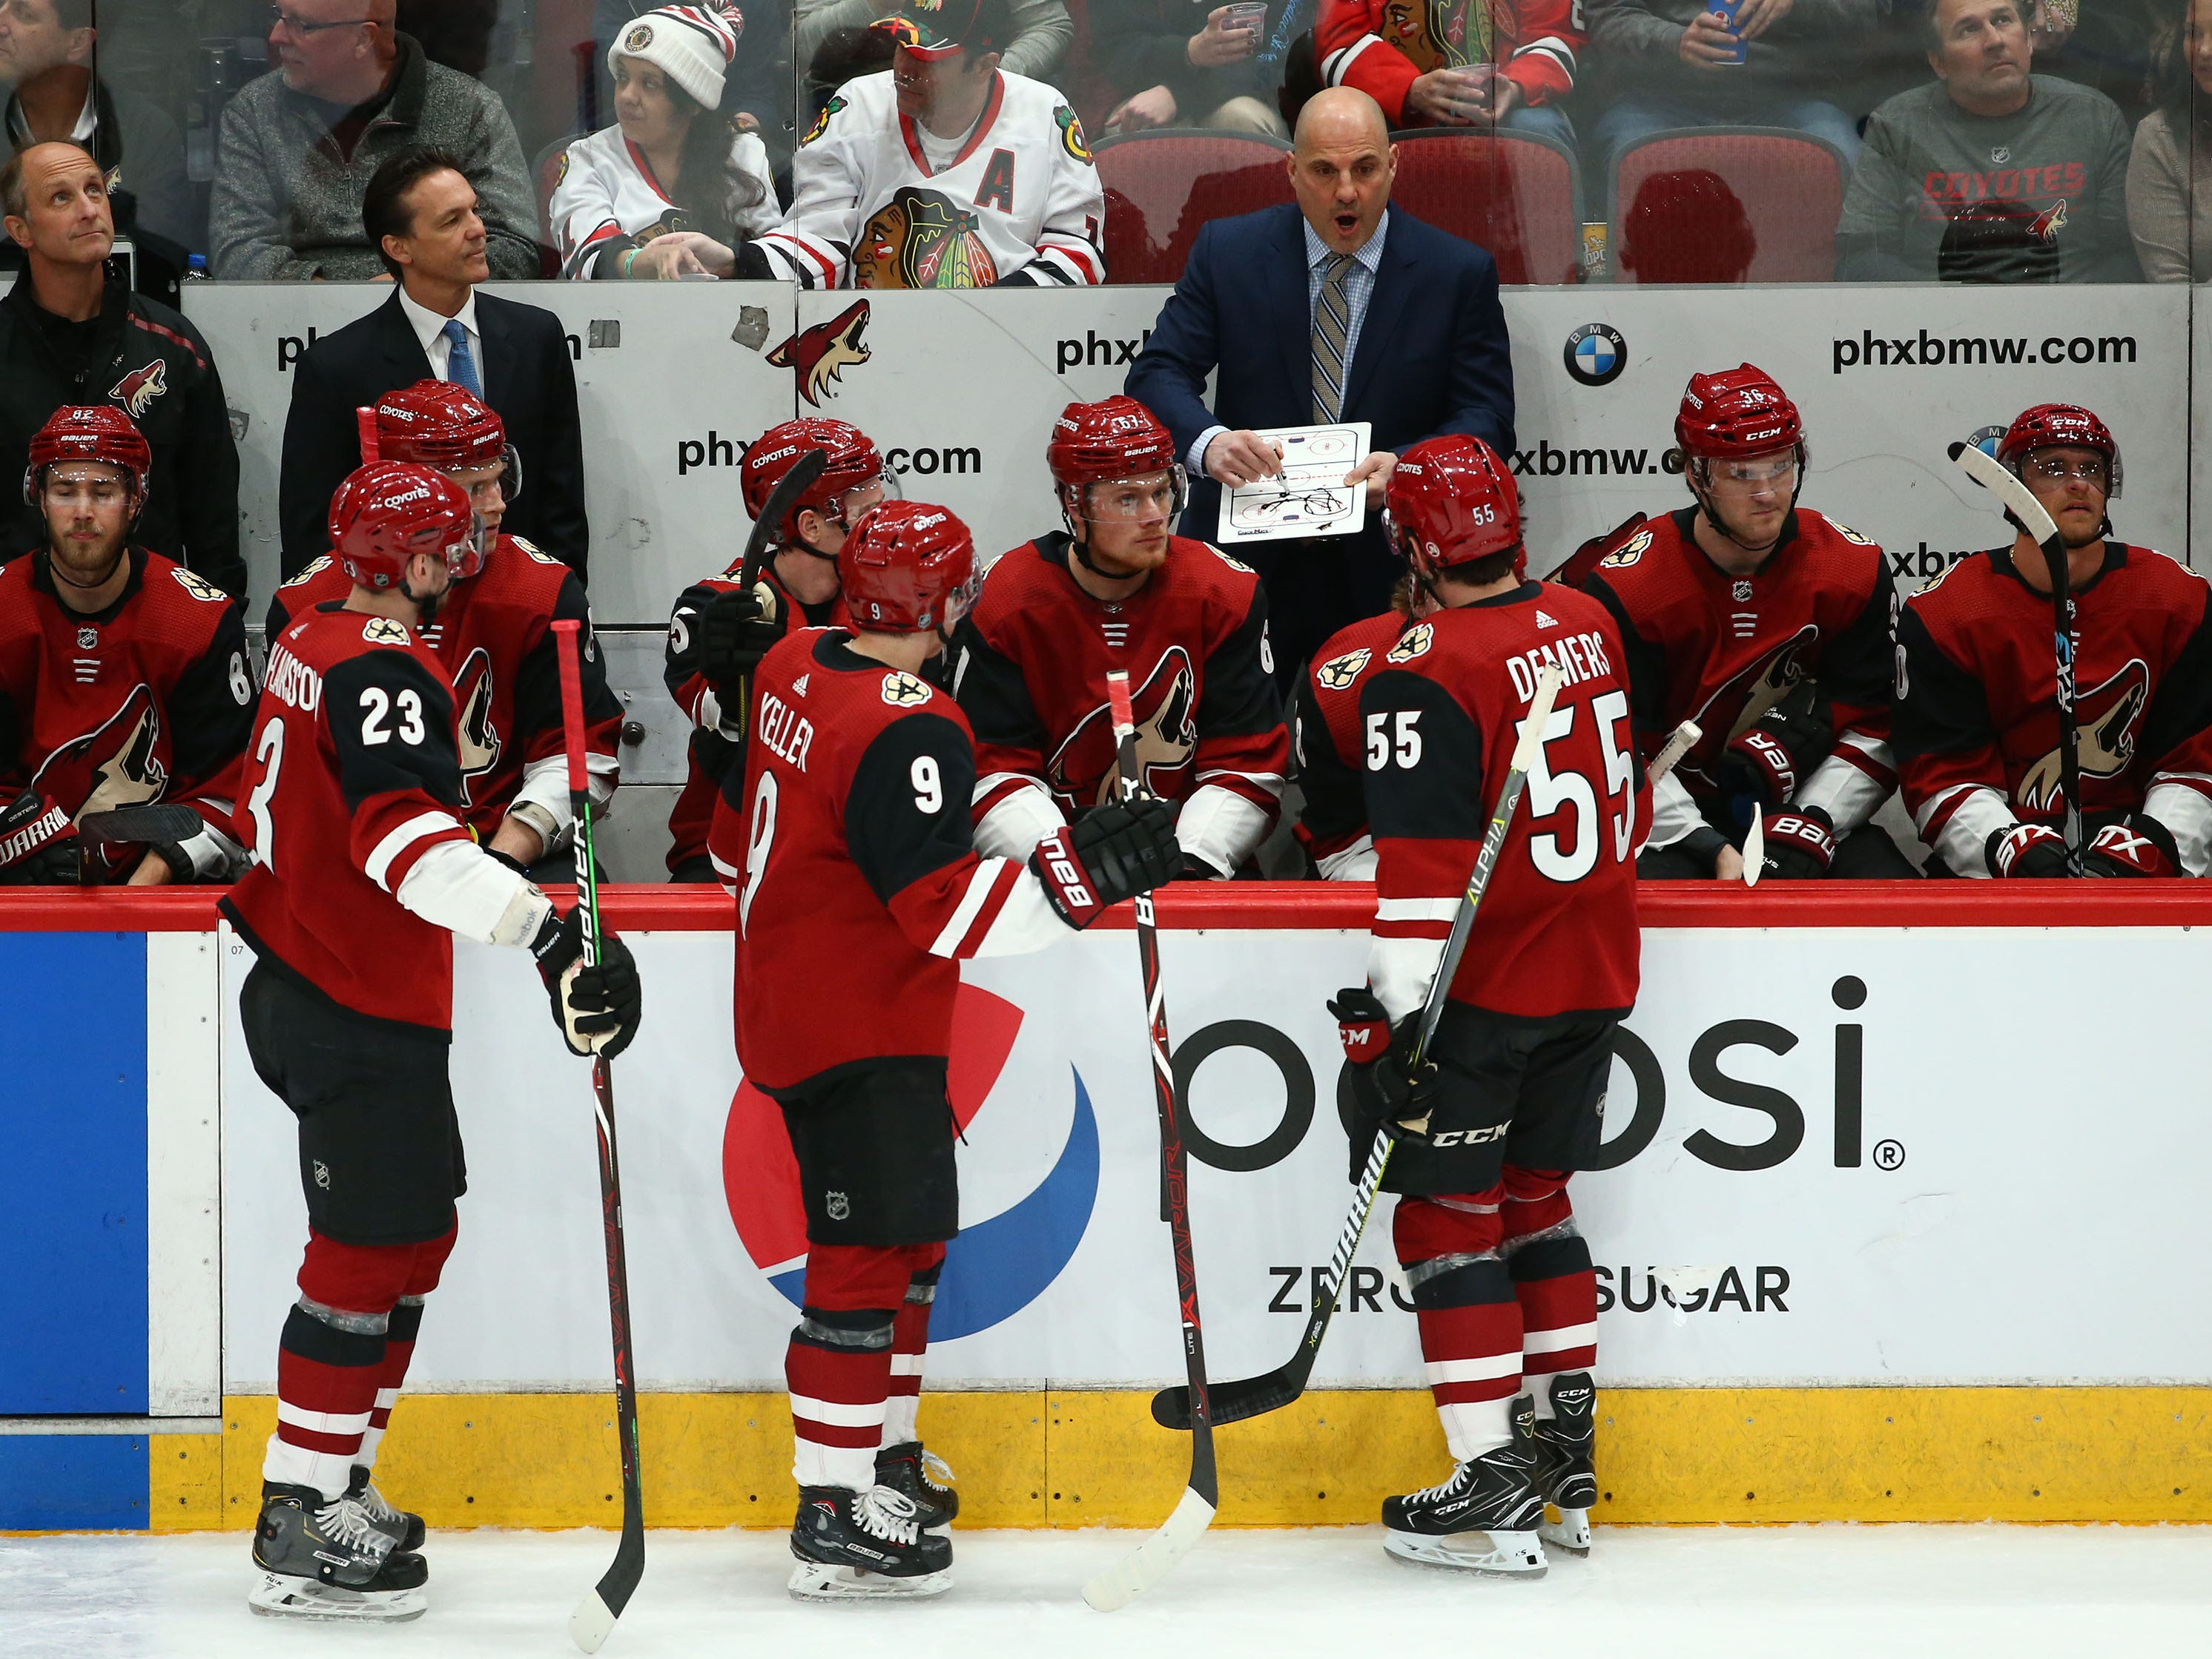 Arizona Coyotes head coach Rick Tocchet talks to his players during a time out against the Chicago Blackhawks in the first period on Mar. 26, 2019, at Gila River Arena in Glendale, Ariz.